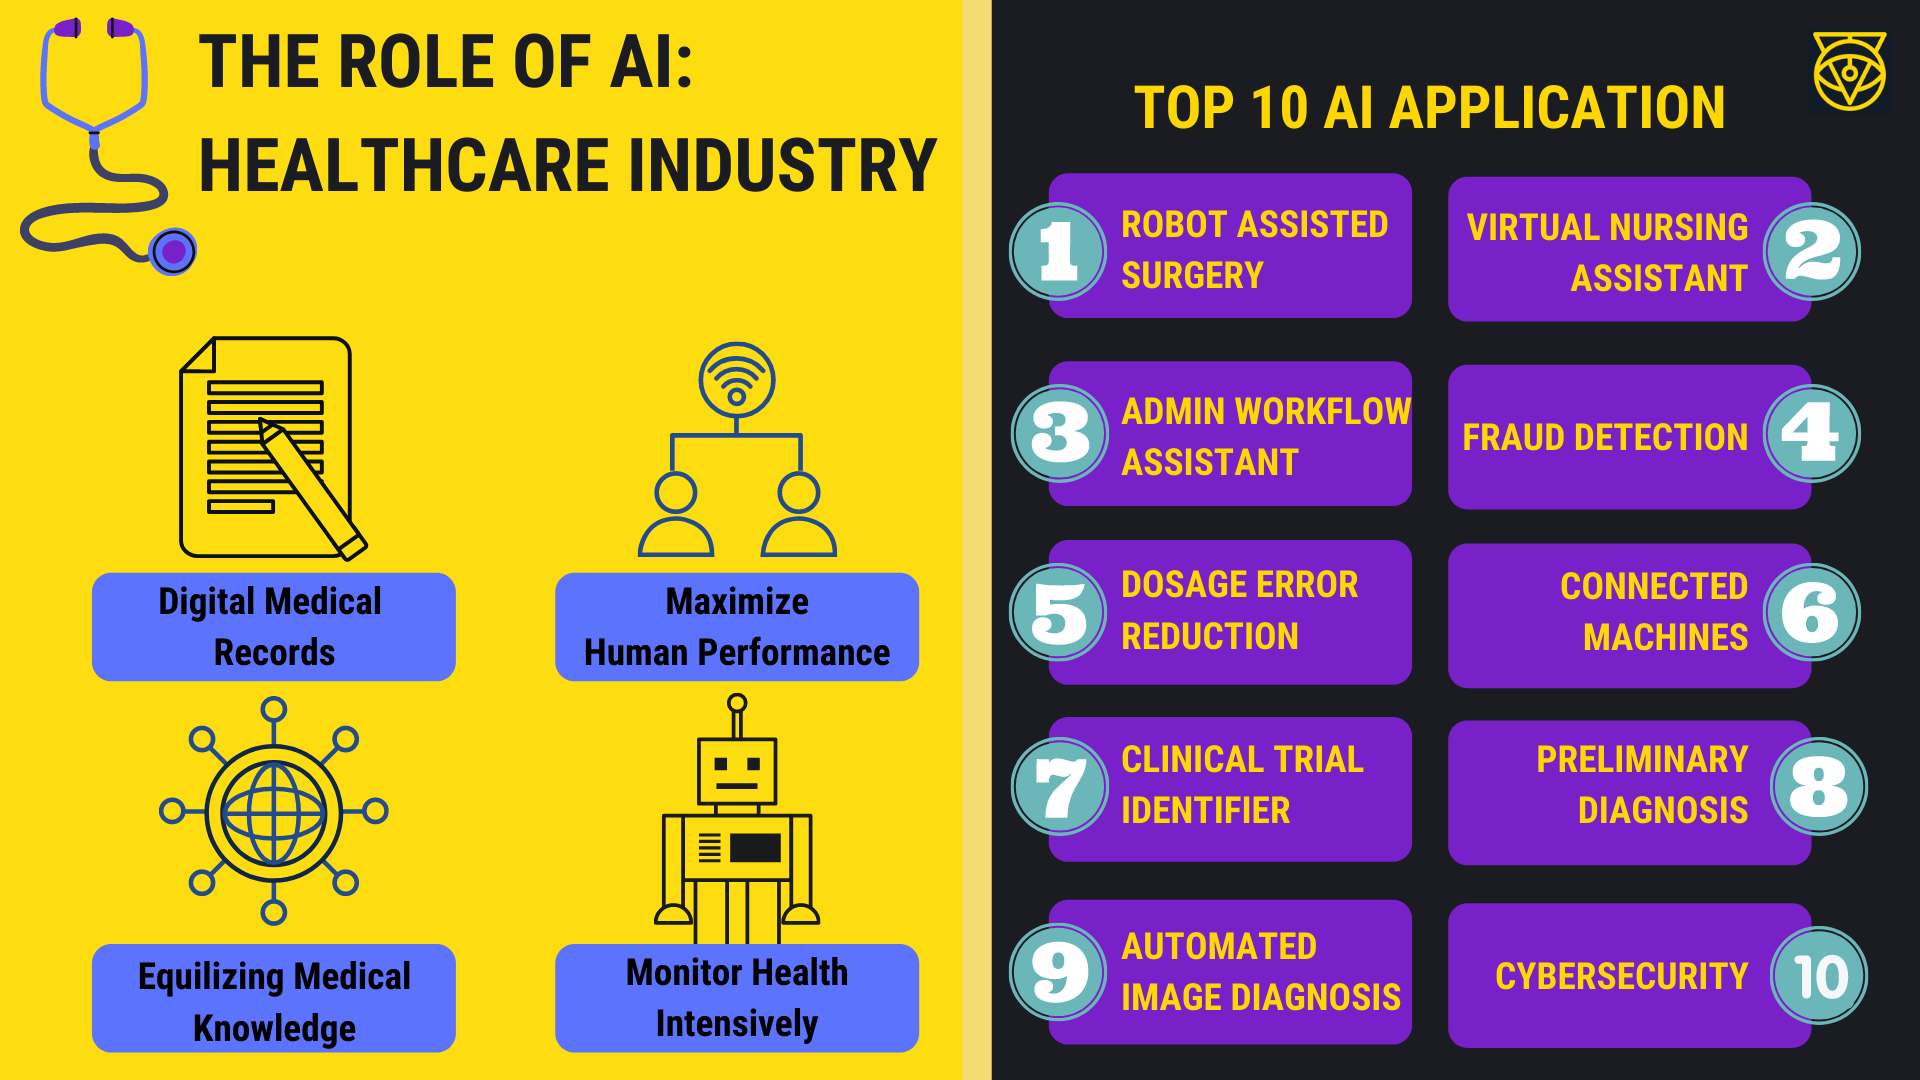 The role of AI: healthcare industry